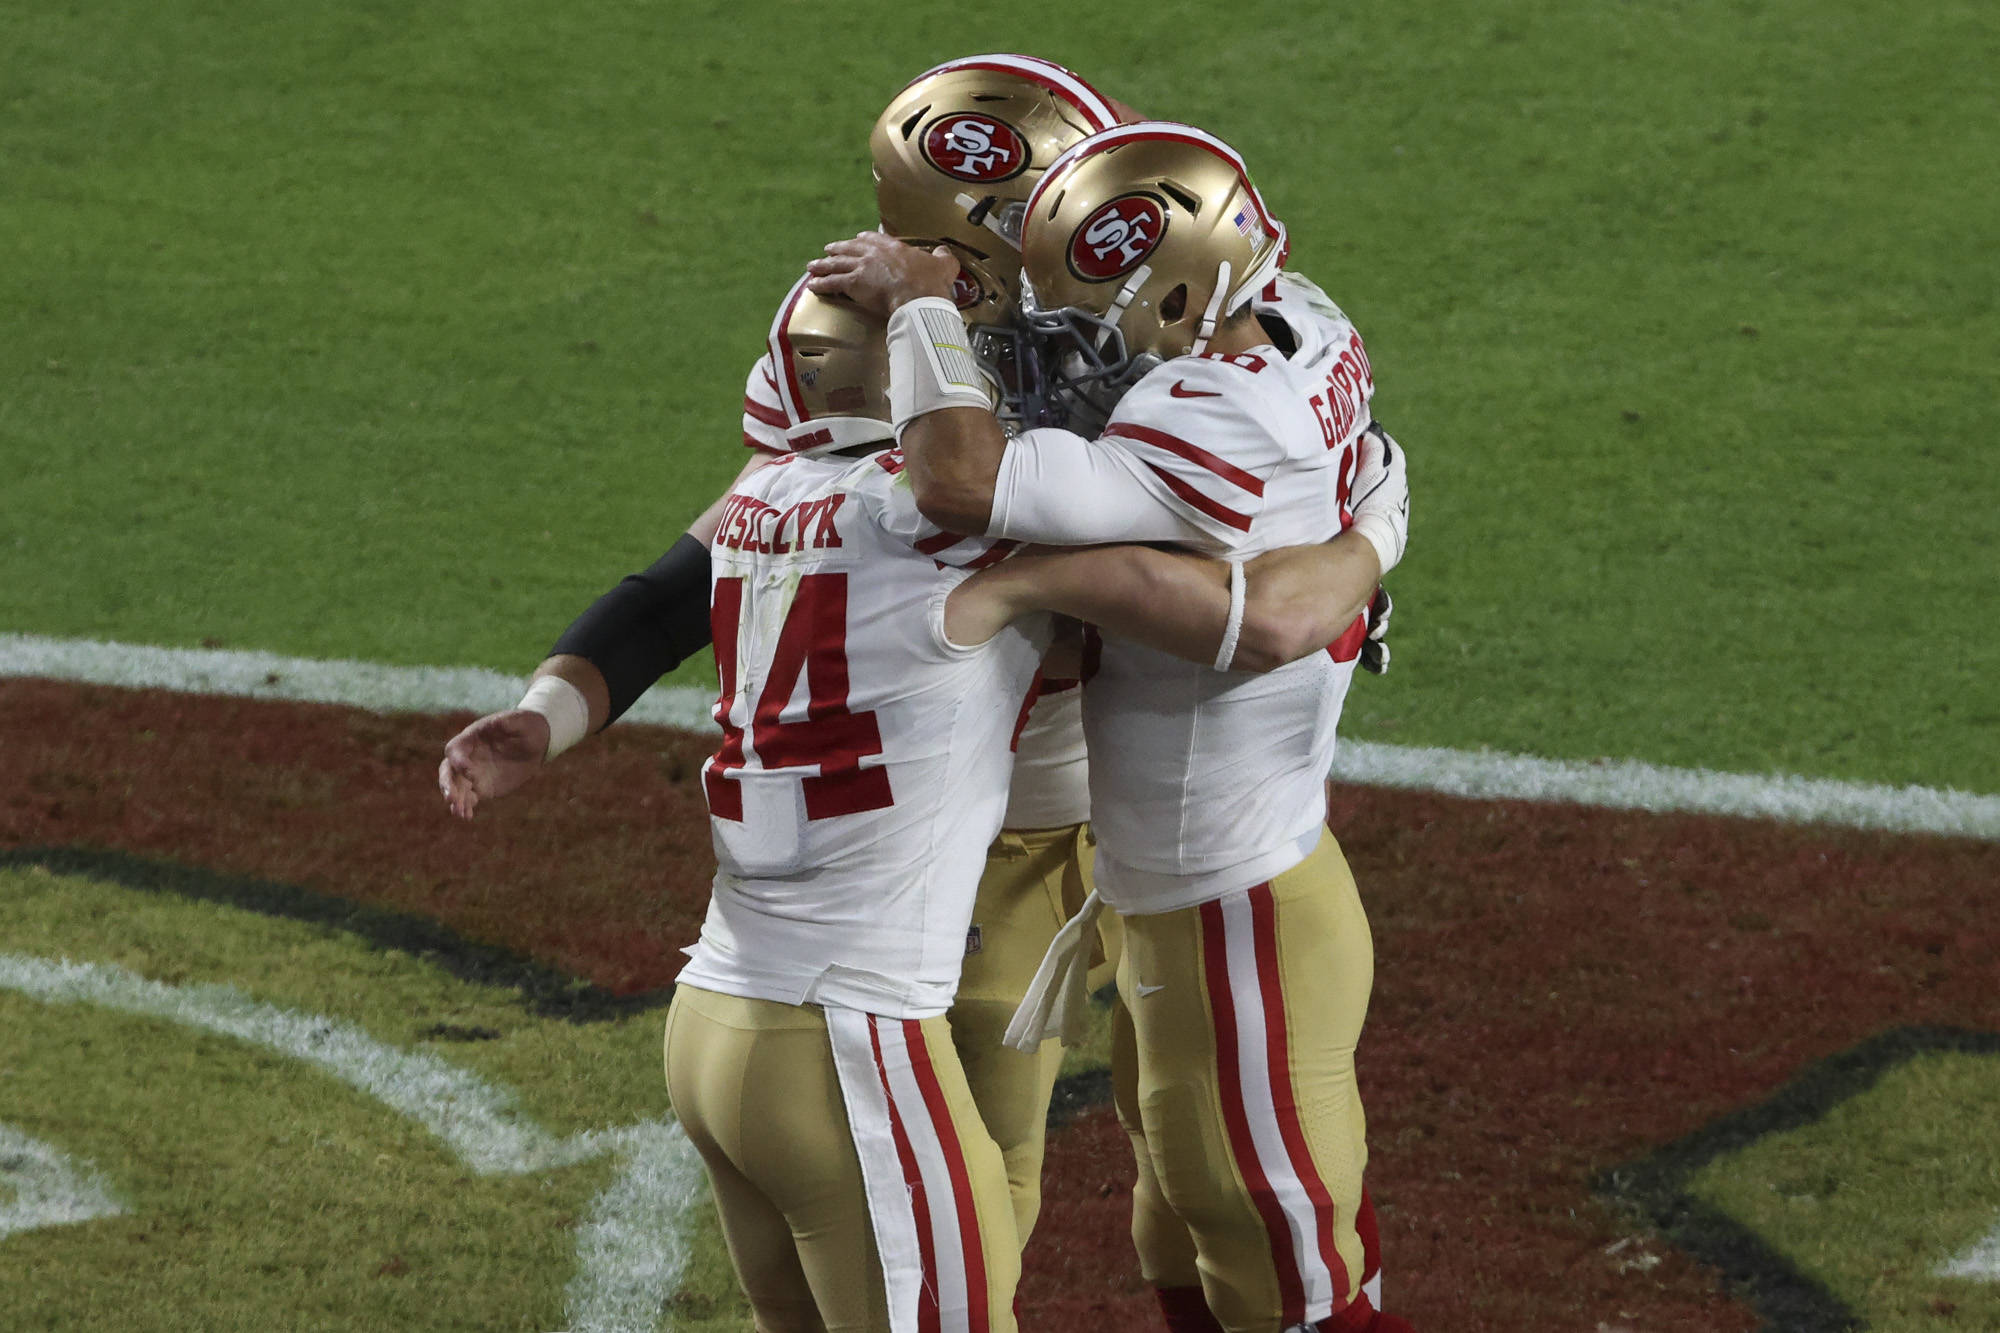 San Francisco 49ers full back Kyle Juszczyk (44) and San Francisco 49ers quarterback Jimmy Garoppolo (10) celebrate his touchdown score during Super Bowl LIV at Hard Rock Stadium on February 2, 2020 in Miami, Florida. (Chris Victorio | Special to the S.F. Examiner)